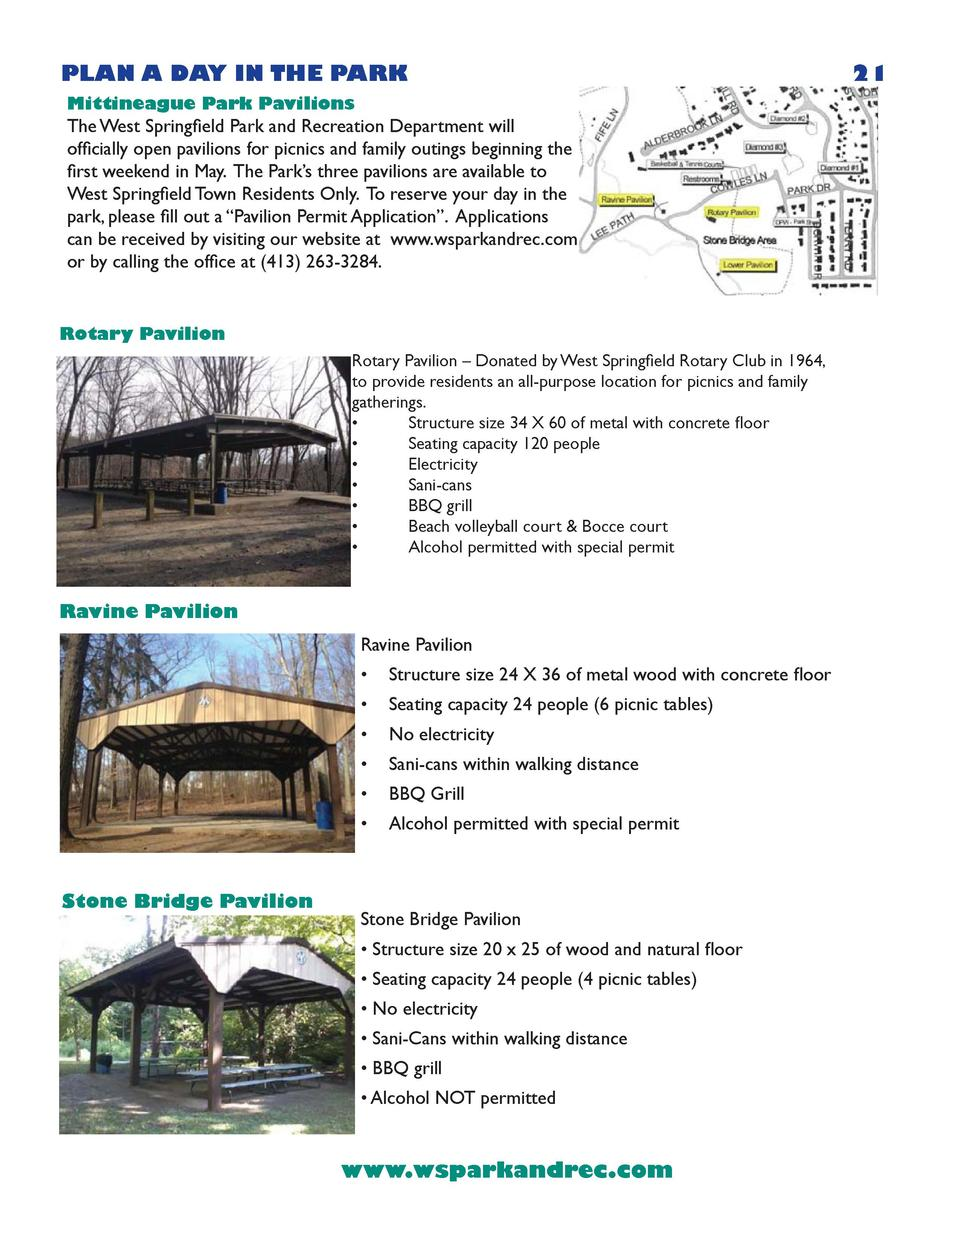 PLAN A DAY IN THE PARK Mittineague Park Pavilions  The West Springfield Park and Recreation Department will officially ope...